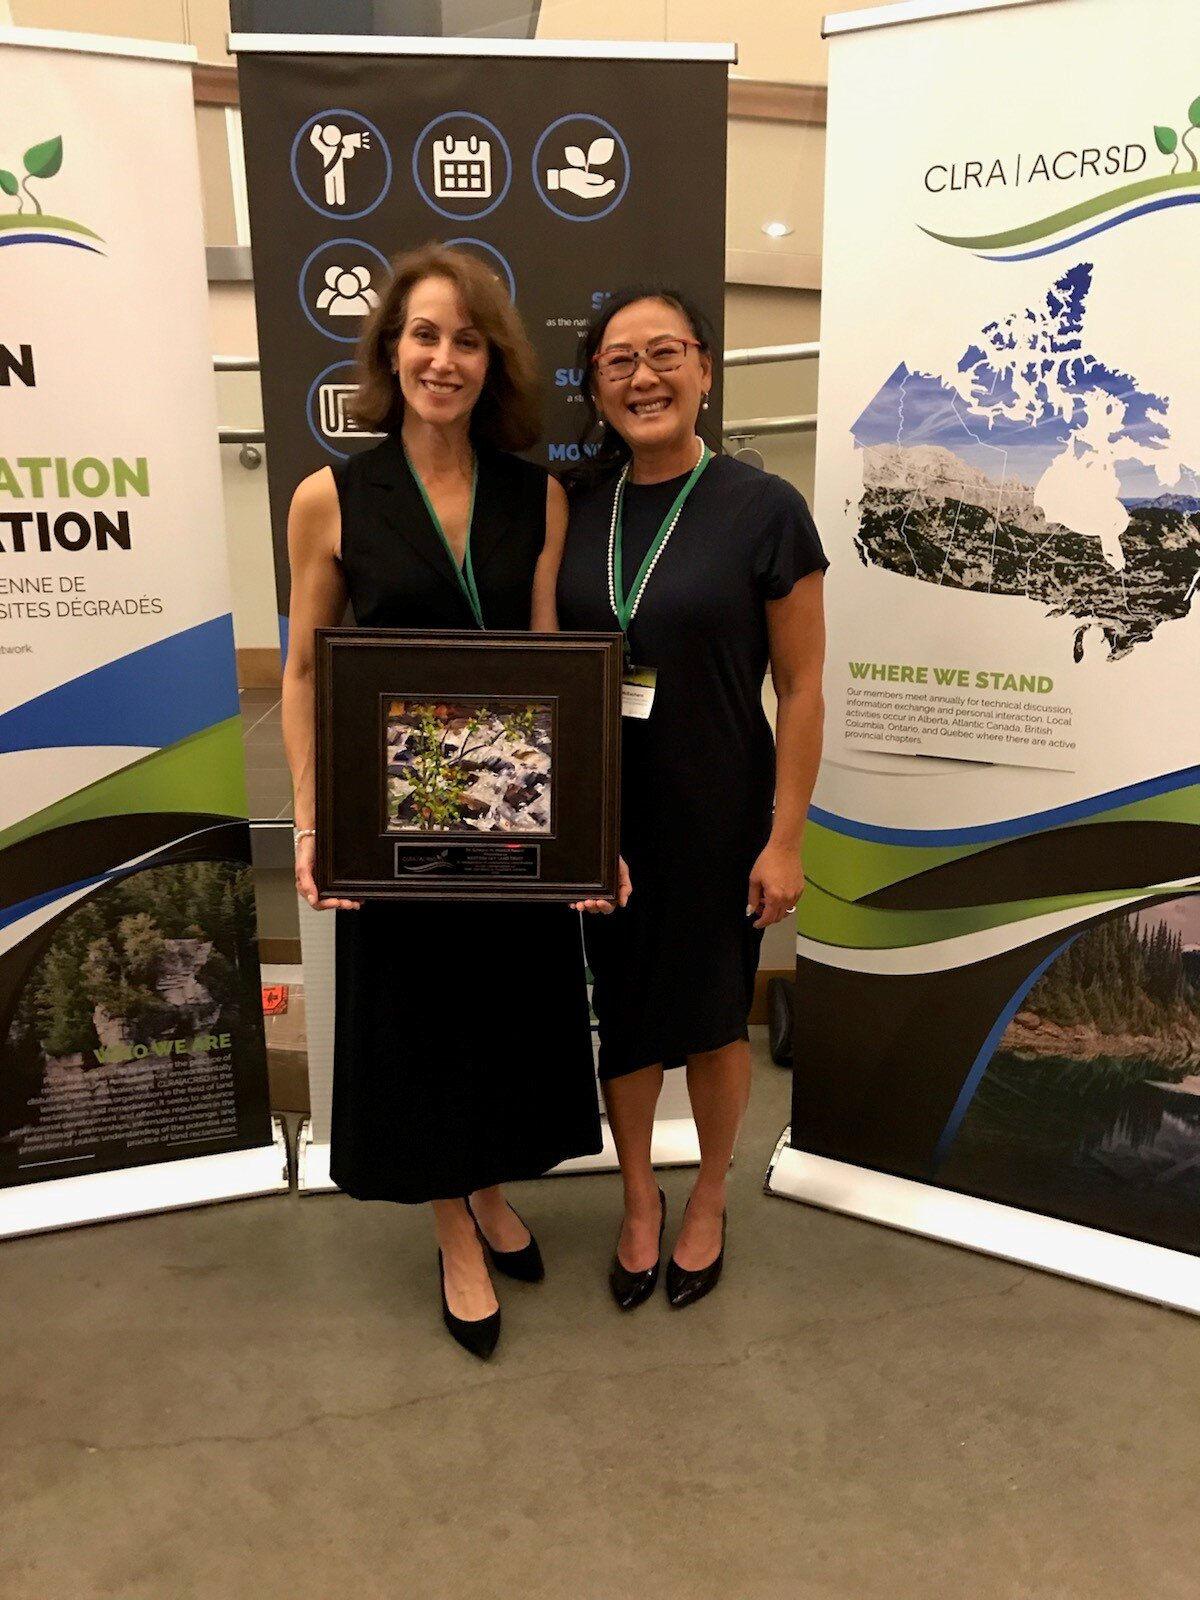 Ellen Magidson (left), accepting the Dr. Edward M. Watkin Award on behalf of Western Sky Land Trust, from Andrea McEachern (right), President of the CLRA, at the National Conference & AGM Banquet, Sept 18, 2019, Kimberley, BC